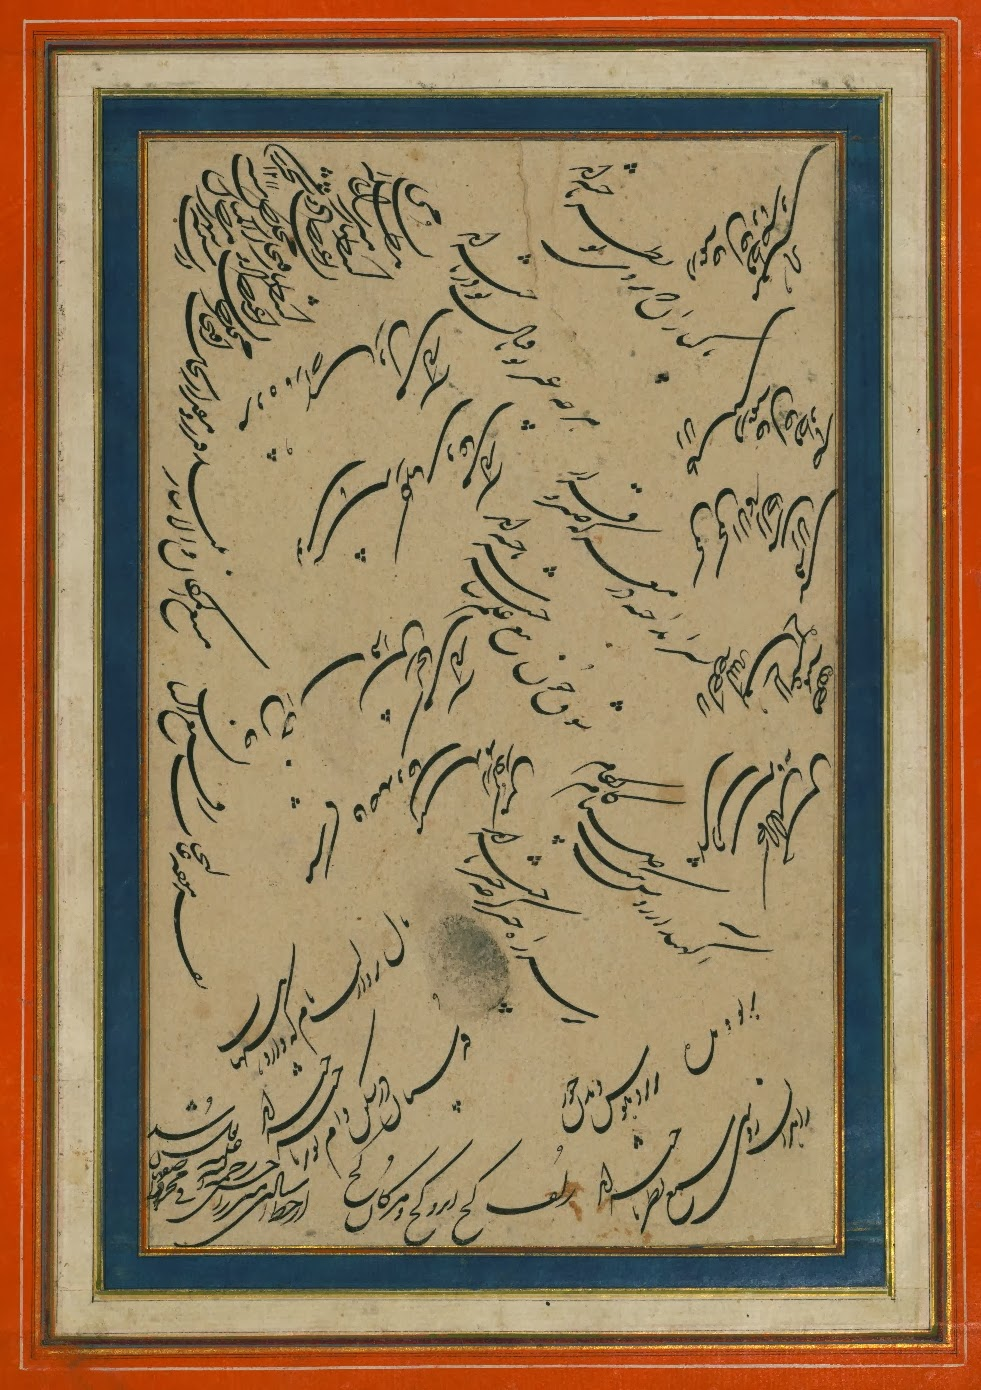 west Indian manuscript miniature - a music visualisation with Persian calligraphy from Rajisthan